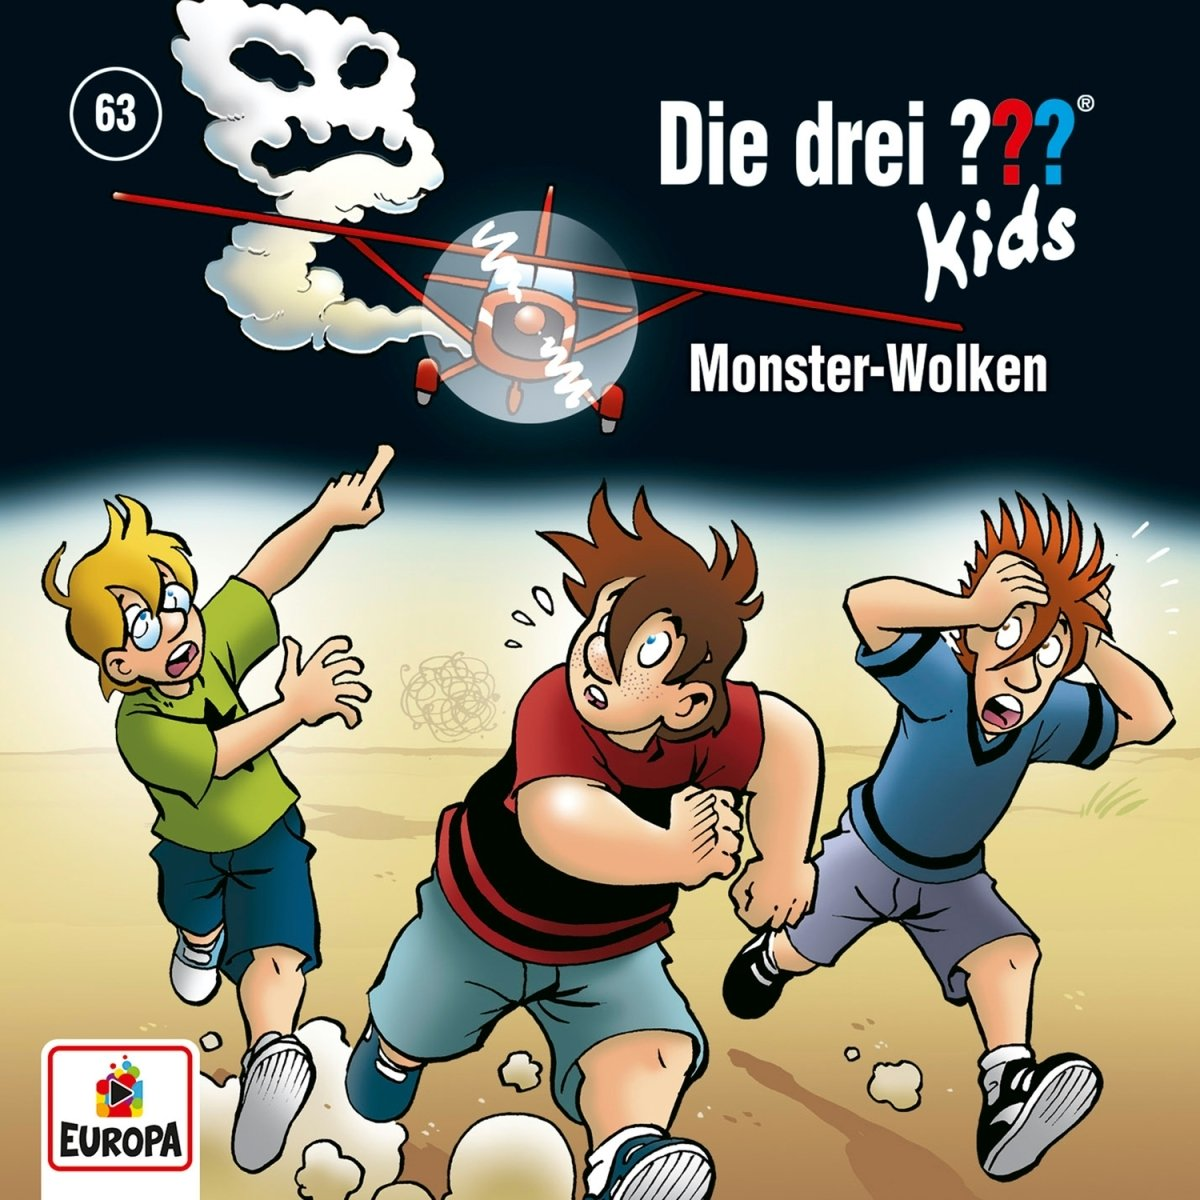 063/Monster-Wolken Europa (Sony Music) Wort Kinderhörspiele